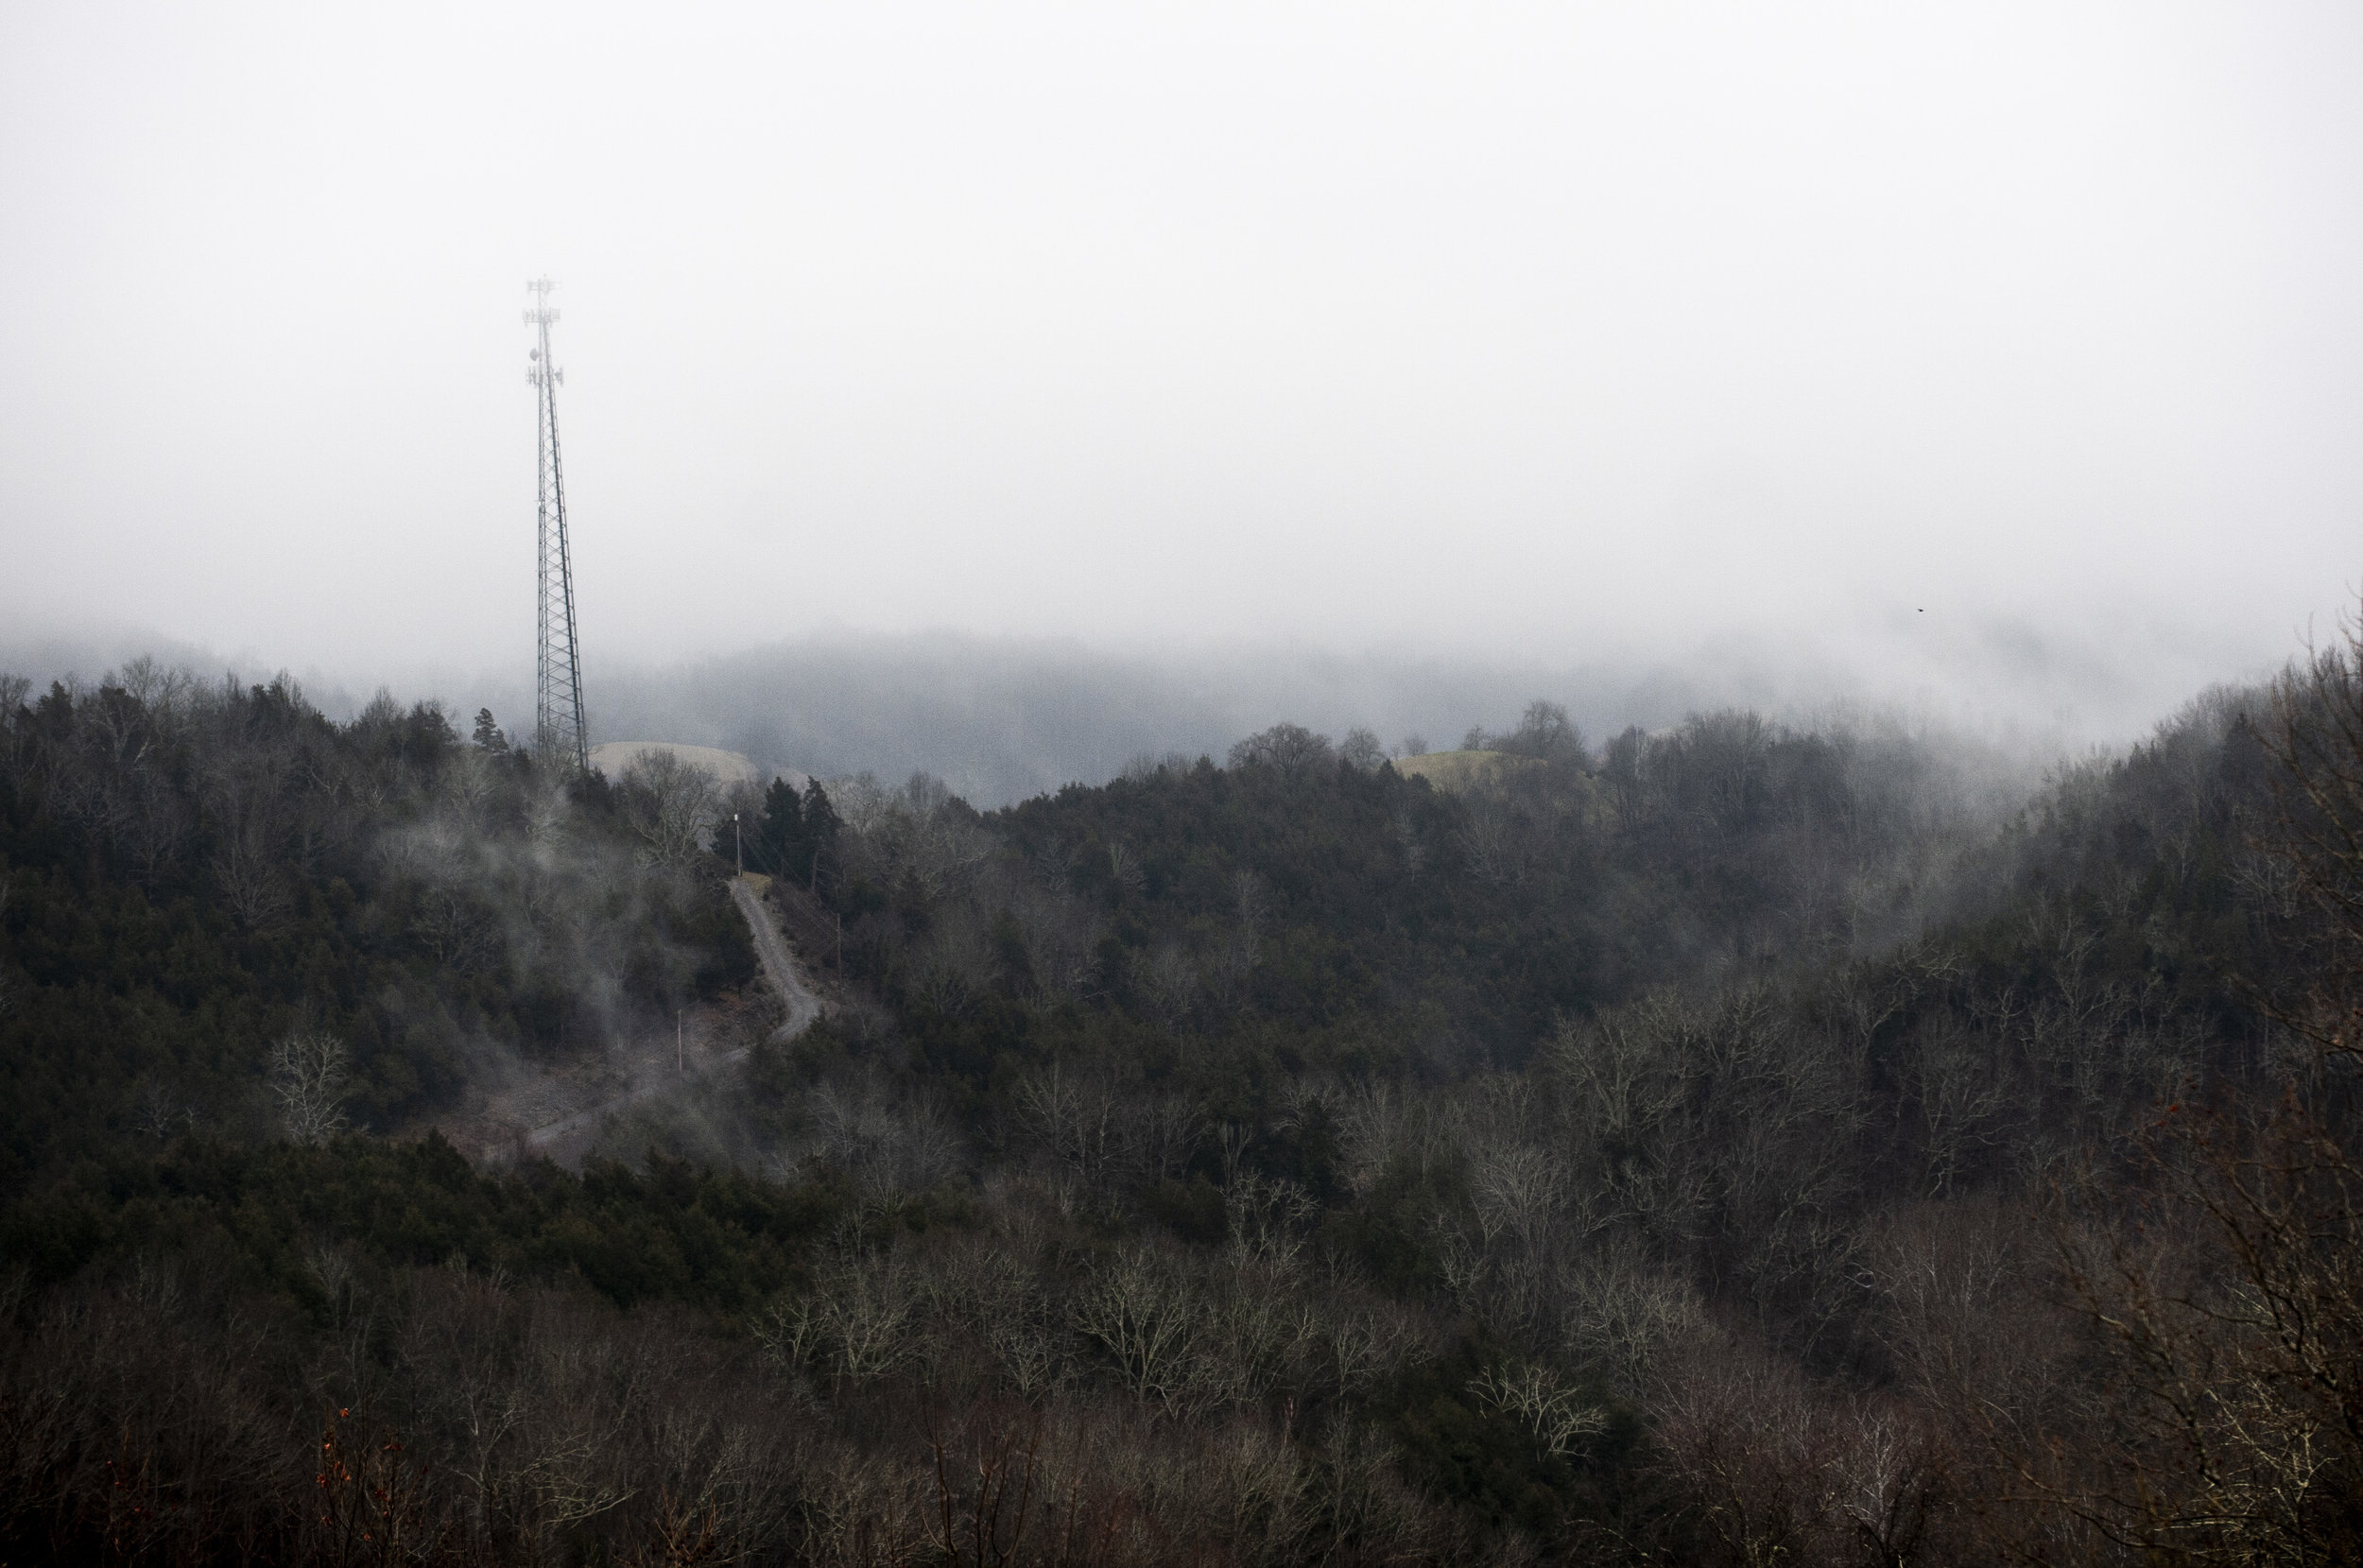 The hills of southern Kentucky, where generations have taken to the mines to unearth the black gold that lies beneath the surface. In these parts coal mining goes beyond being a job, its a legacy for many. Despite the prevalence of Black Lung Disease many miners and former miners look back on their career with fondness.